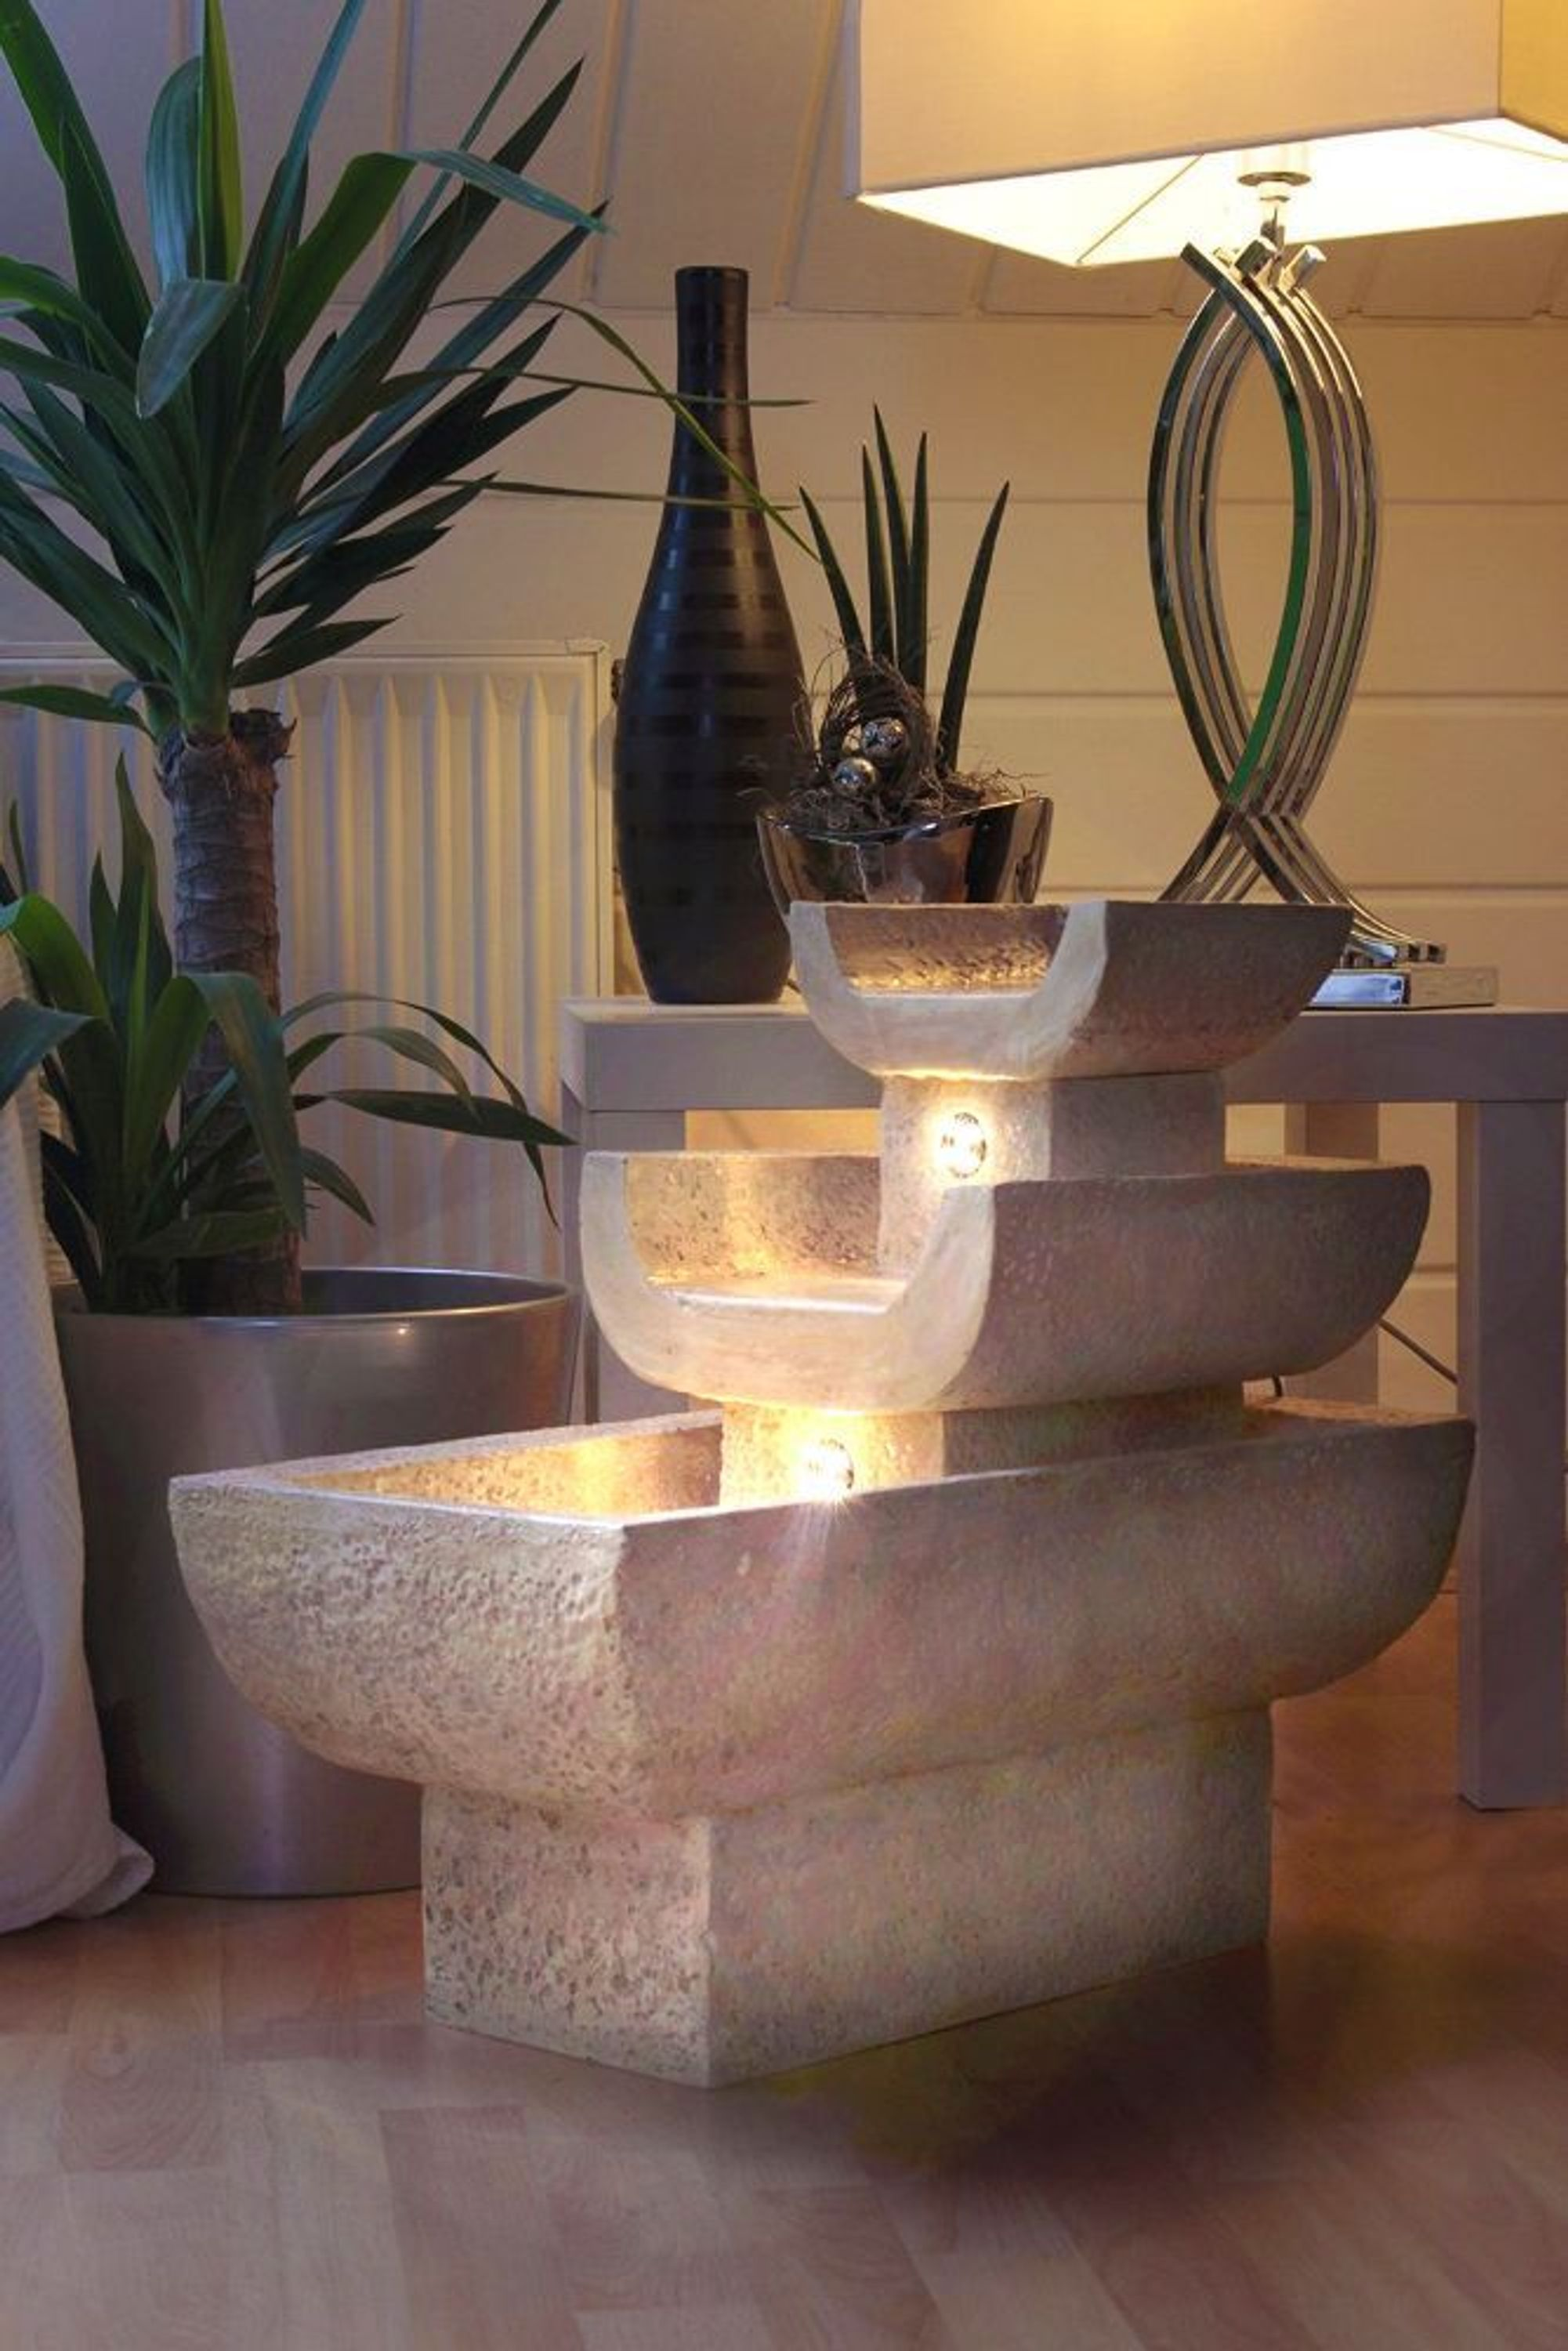 zimmerbrunnen mediterran mit led beleuchtung springbrunnen. Black Bedroom Furniture Sets. Home Design Ideas